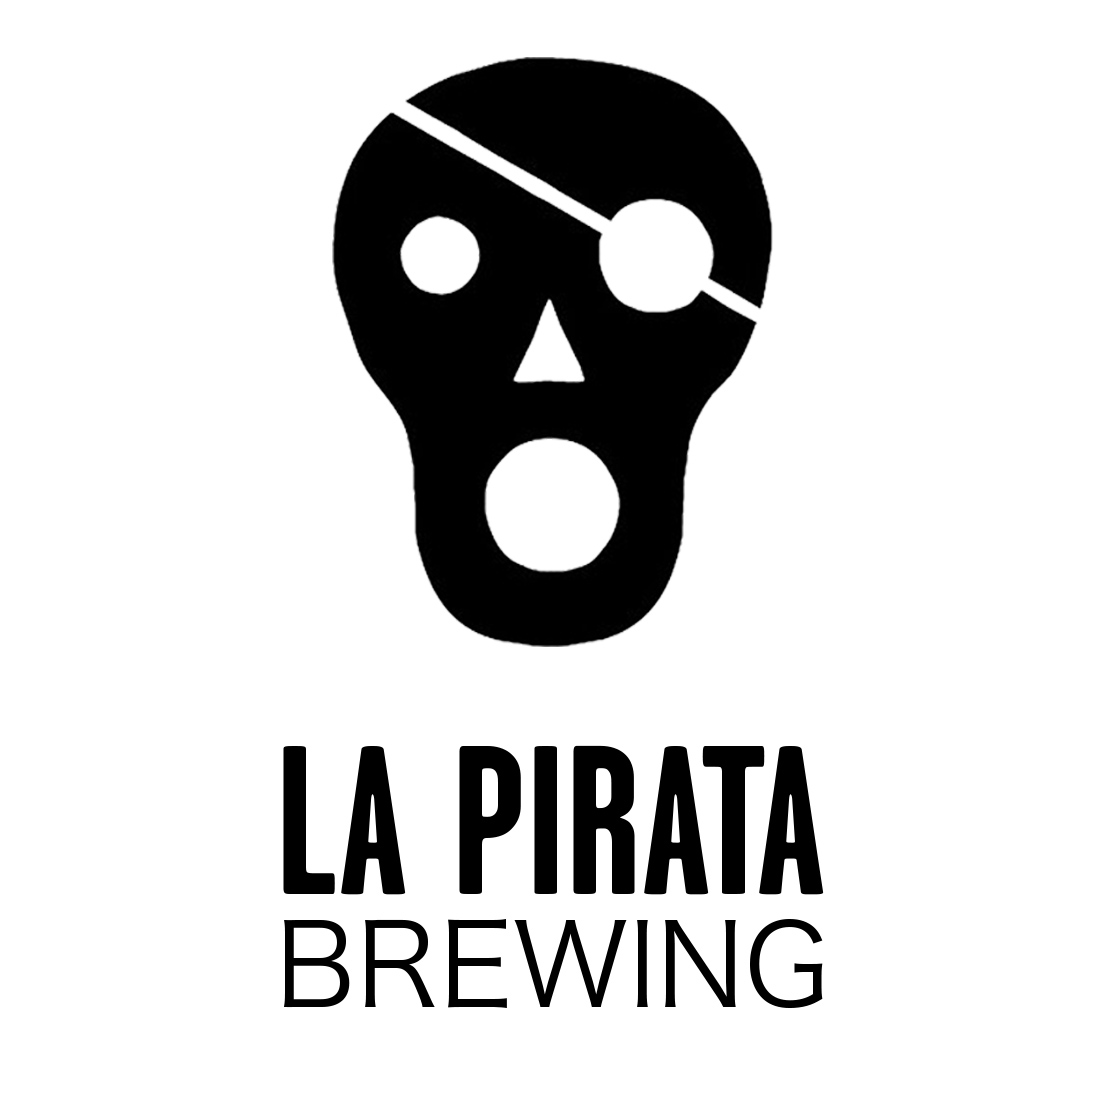 La Pirata Brewing